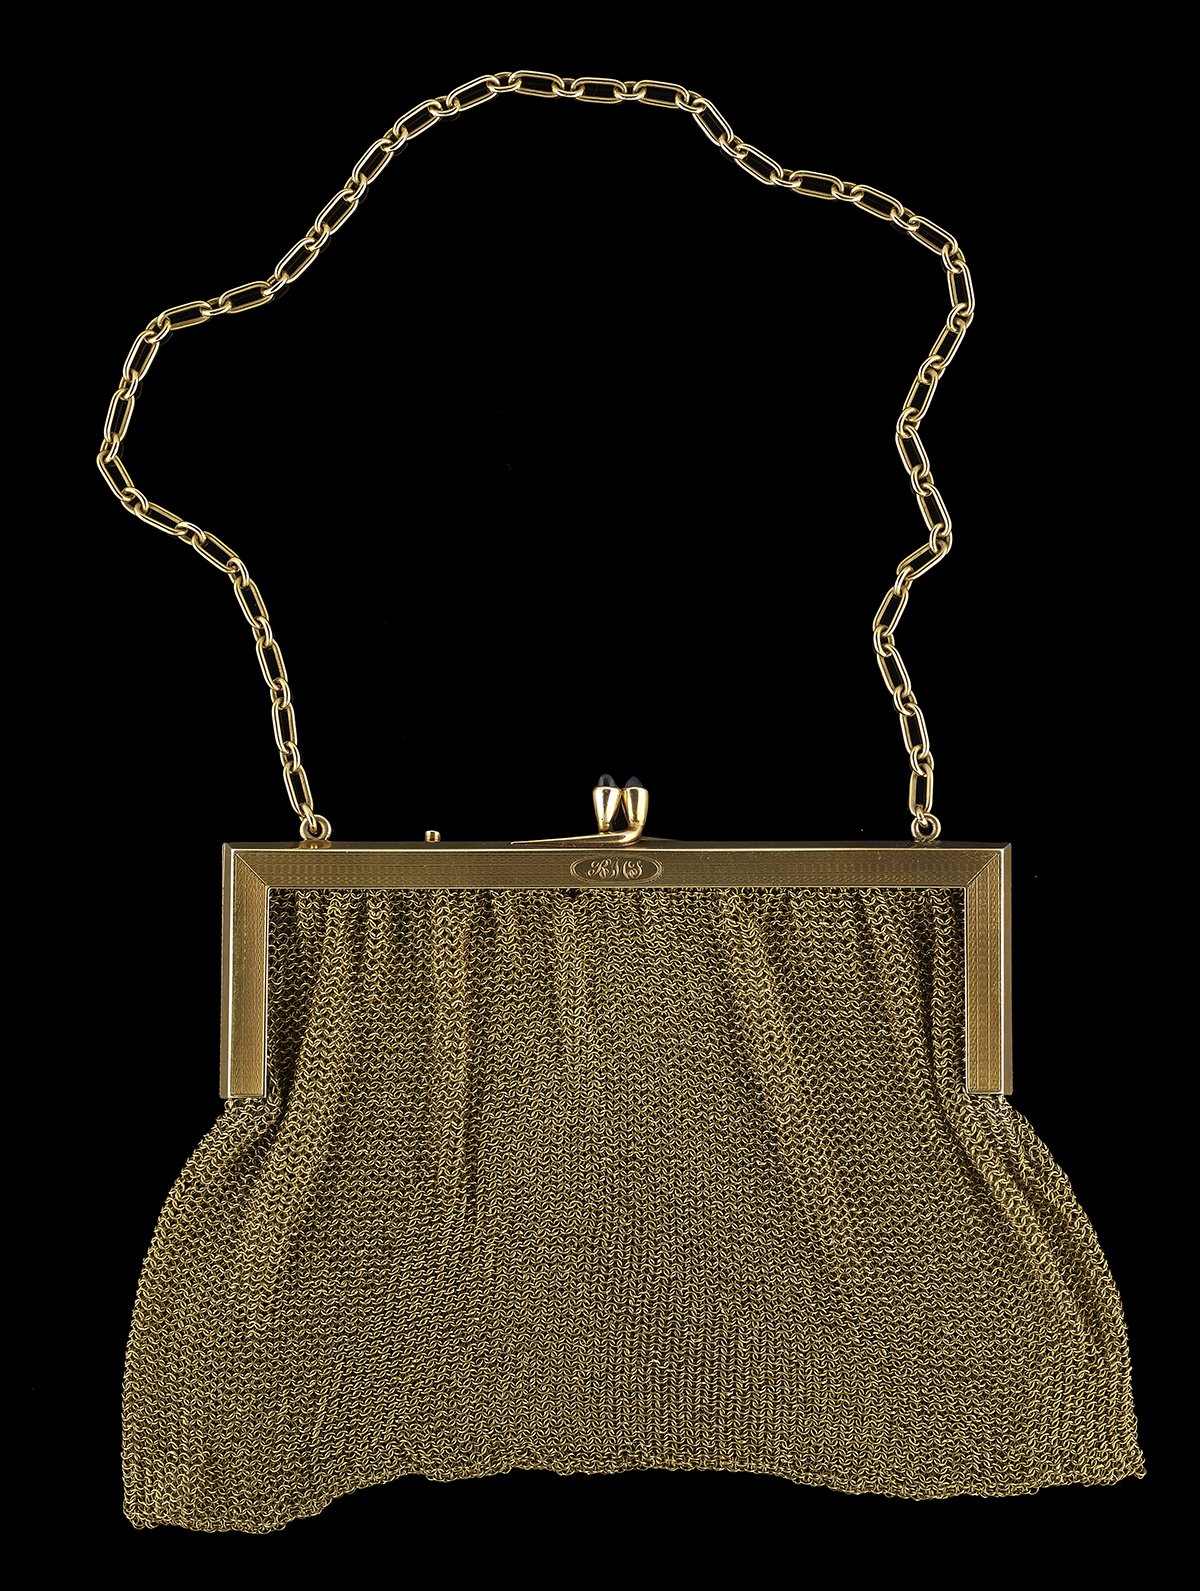 Lot 551 - 14k Yellow Gold and Sapphire Purse